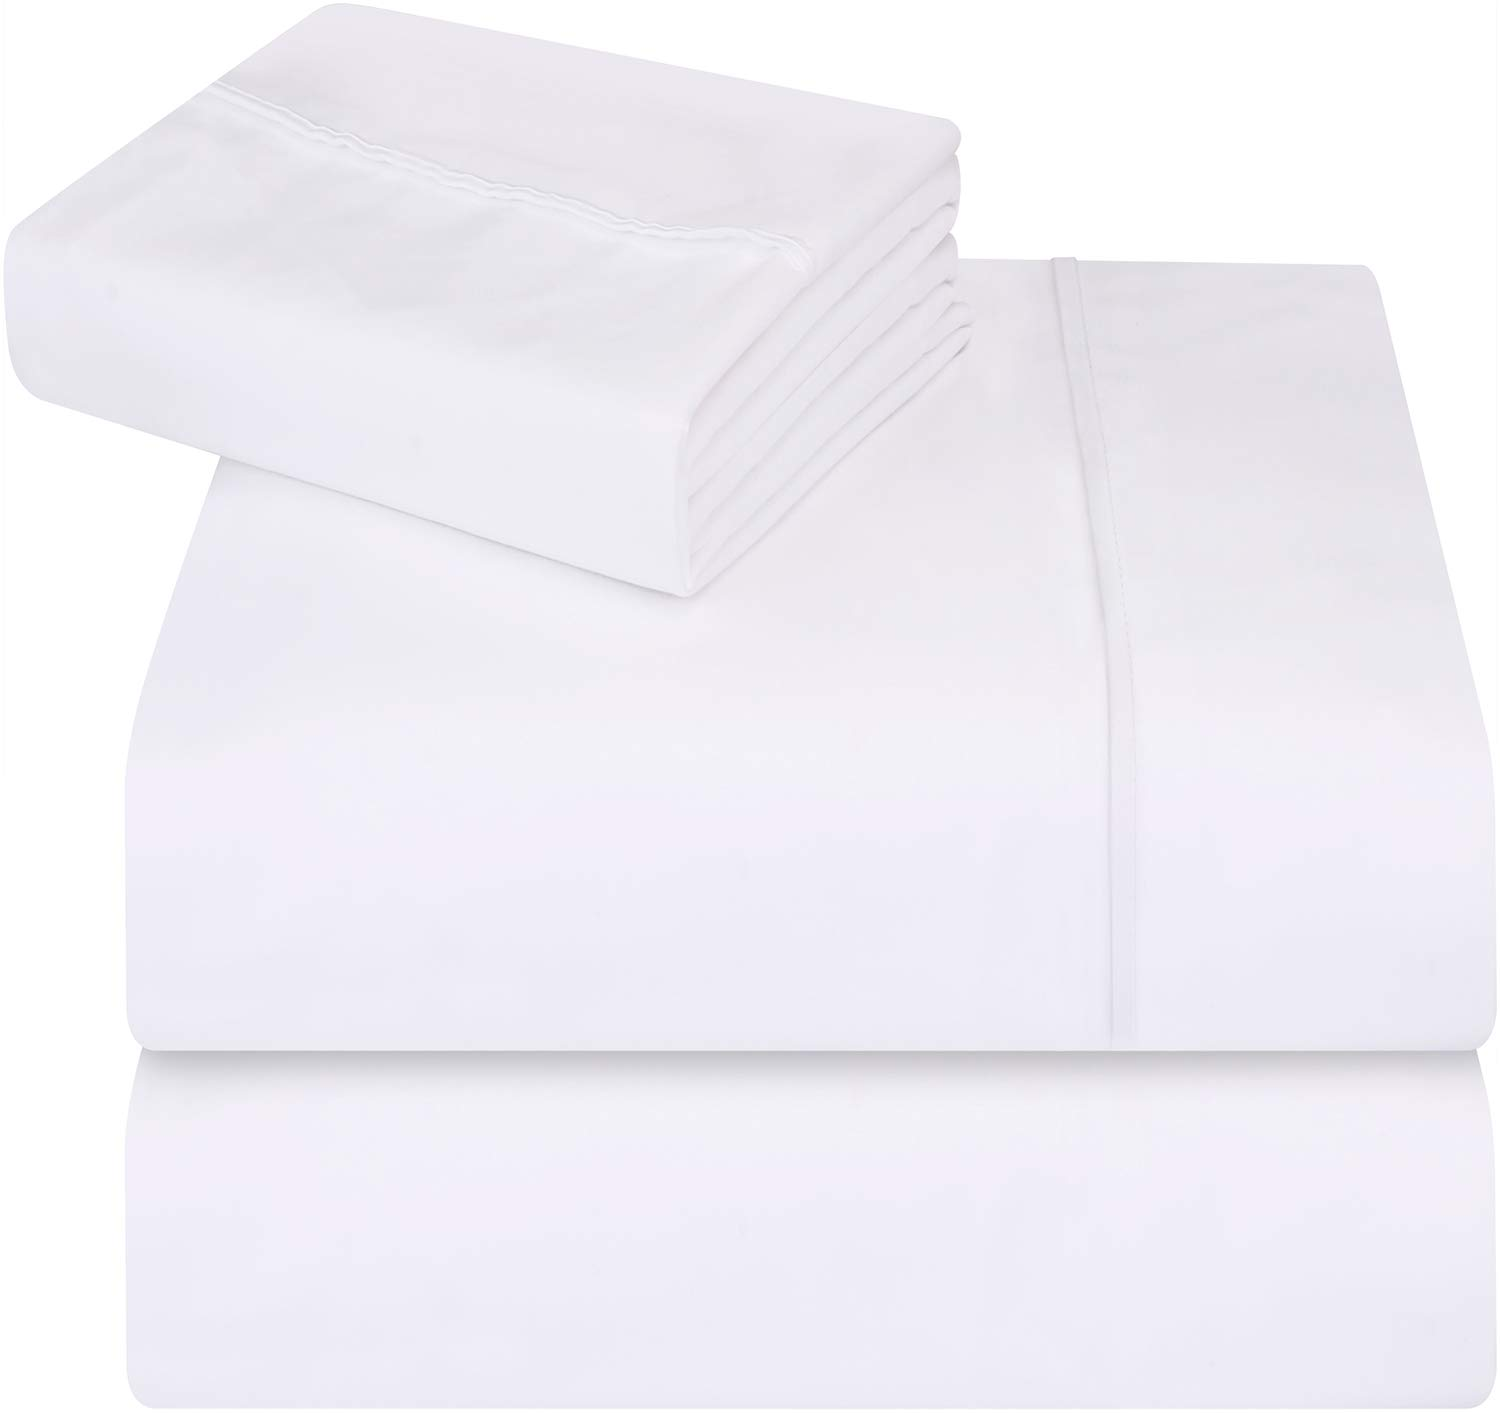 Utopia Bedding 3-Piece Twin Bed Sheet Set - Soft Brushed Microfiber Wrinkle Fade and Stain Resistant - White